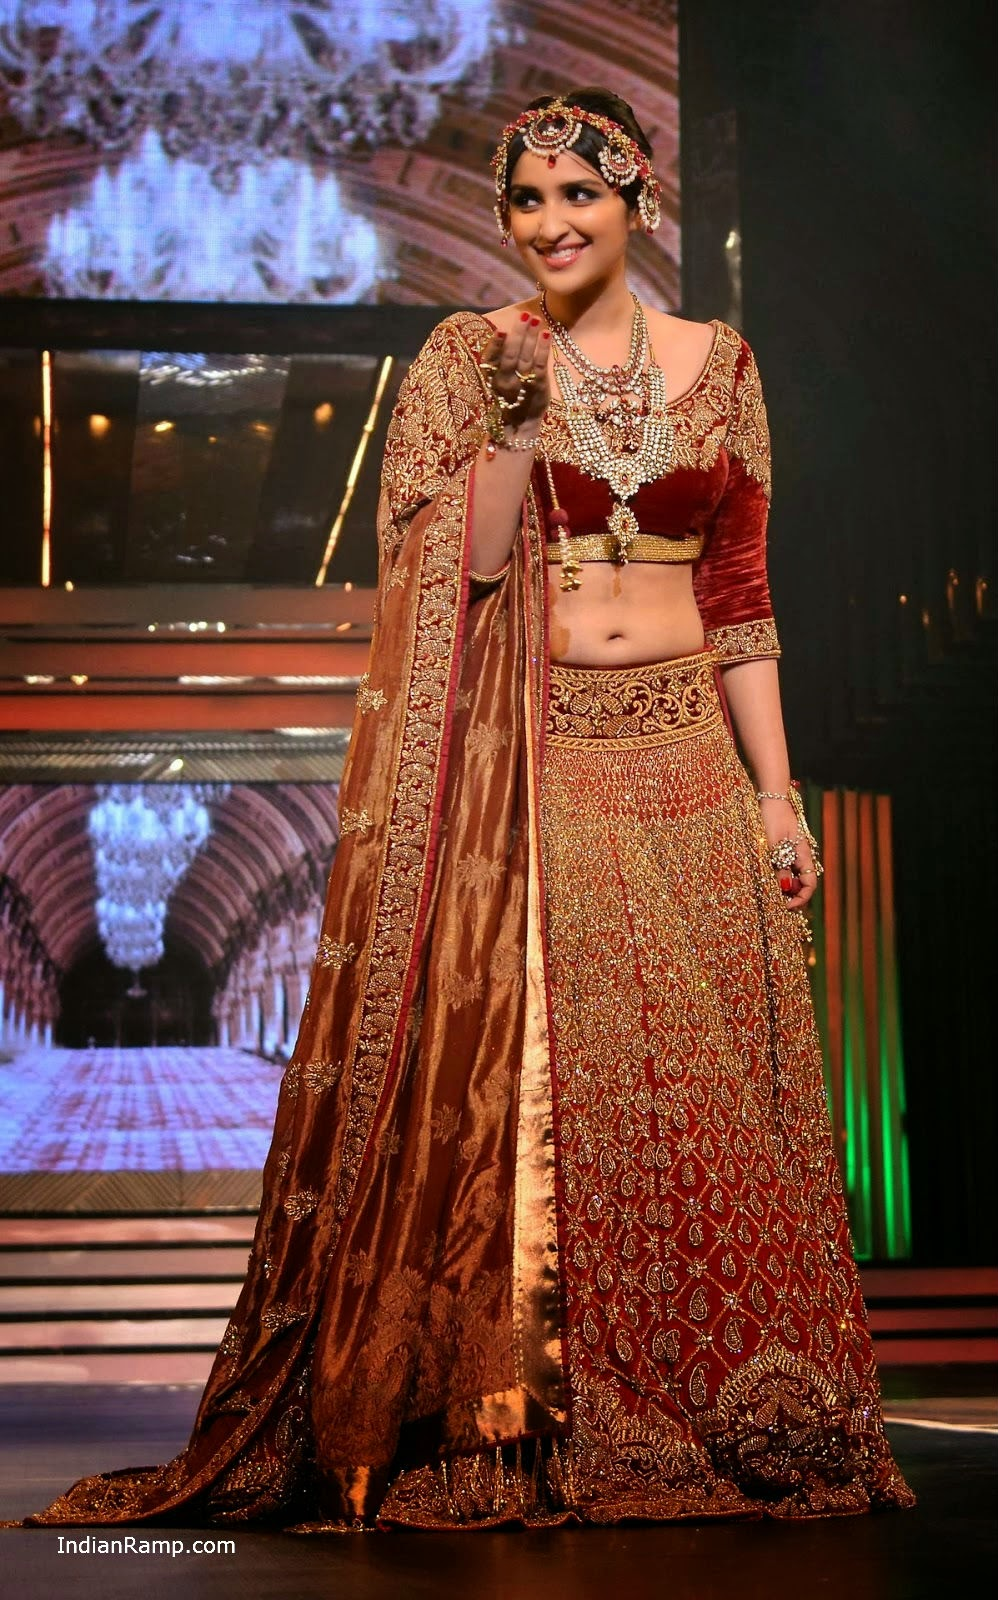 Parineeti Chopra In A Red Lehenga Choli Bridal Dress At